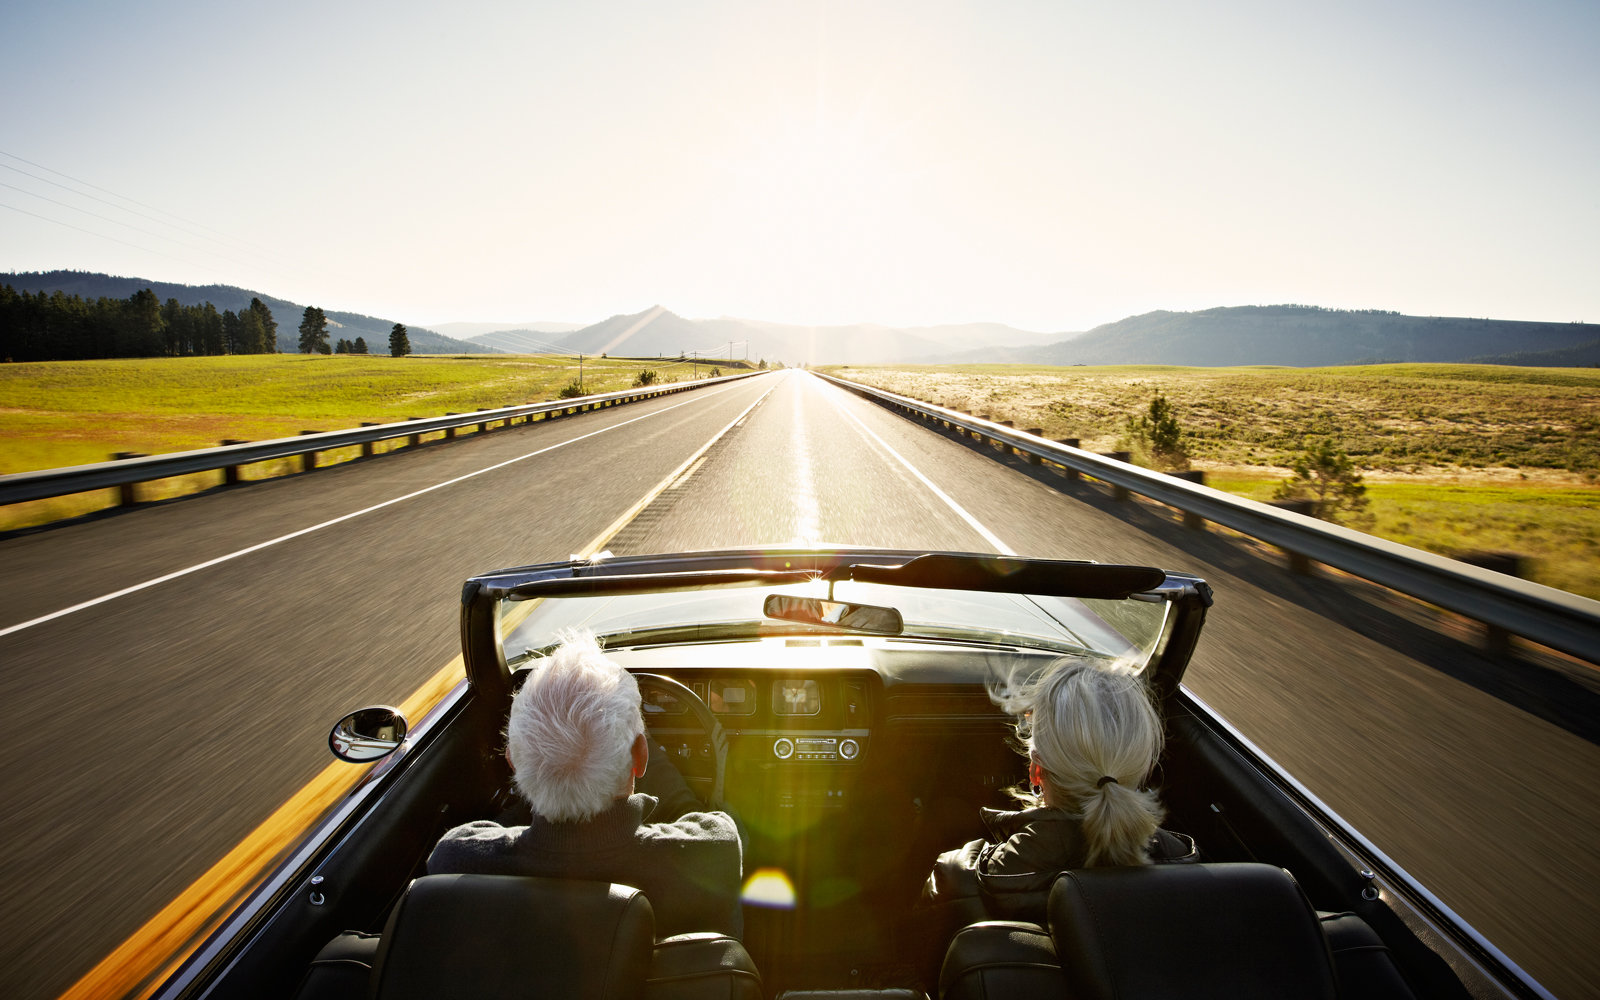 The Most Popular States for Retirees